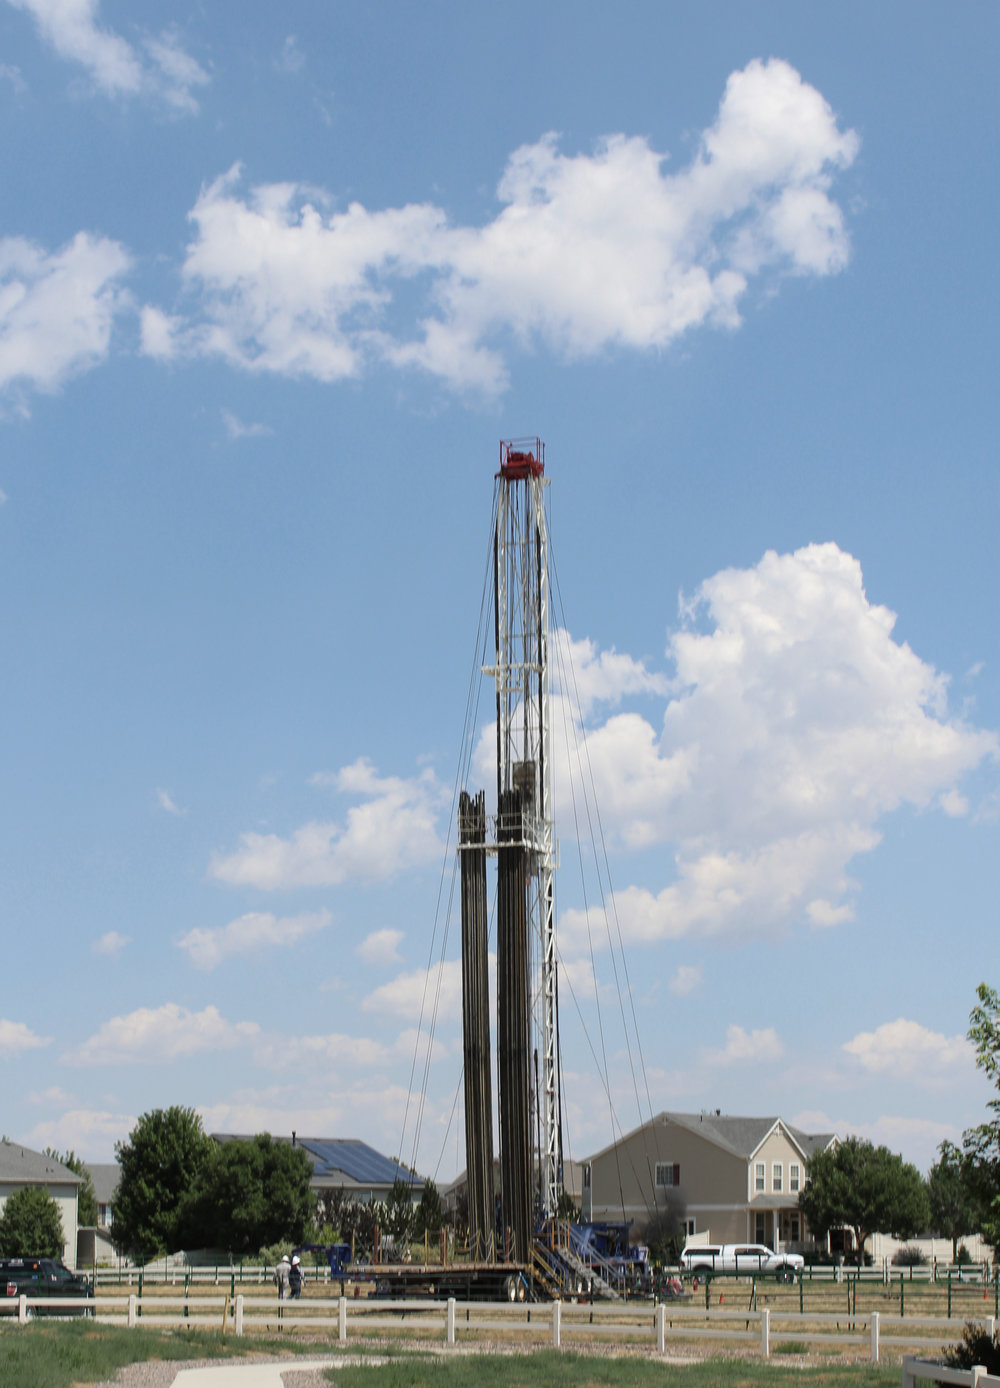 Fracking well, Weld County, CO. Photograph by David Brooks.